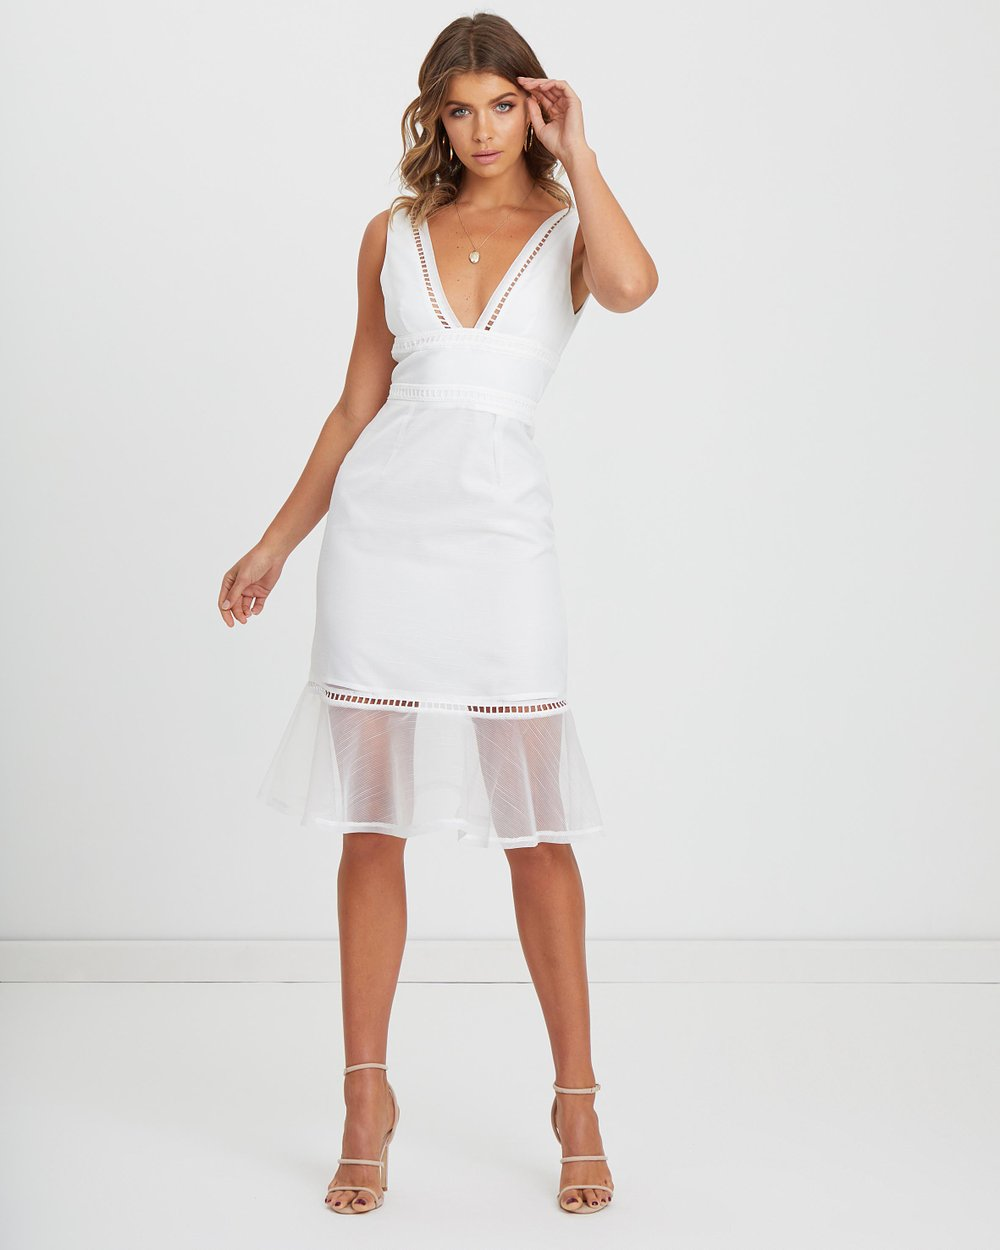 52ec8f9368 ICONIC EXCLUSIVE - Ollie Organza Midi Dress by Atmos Here Online ...